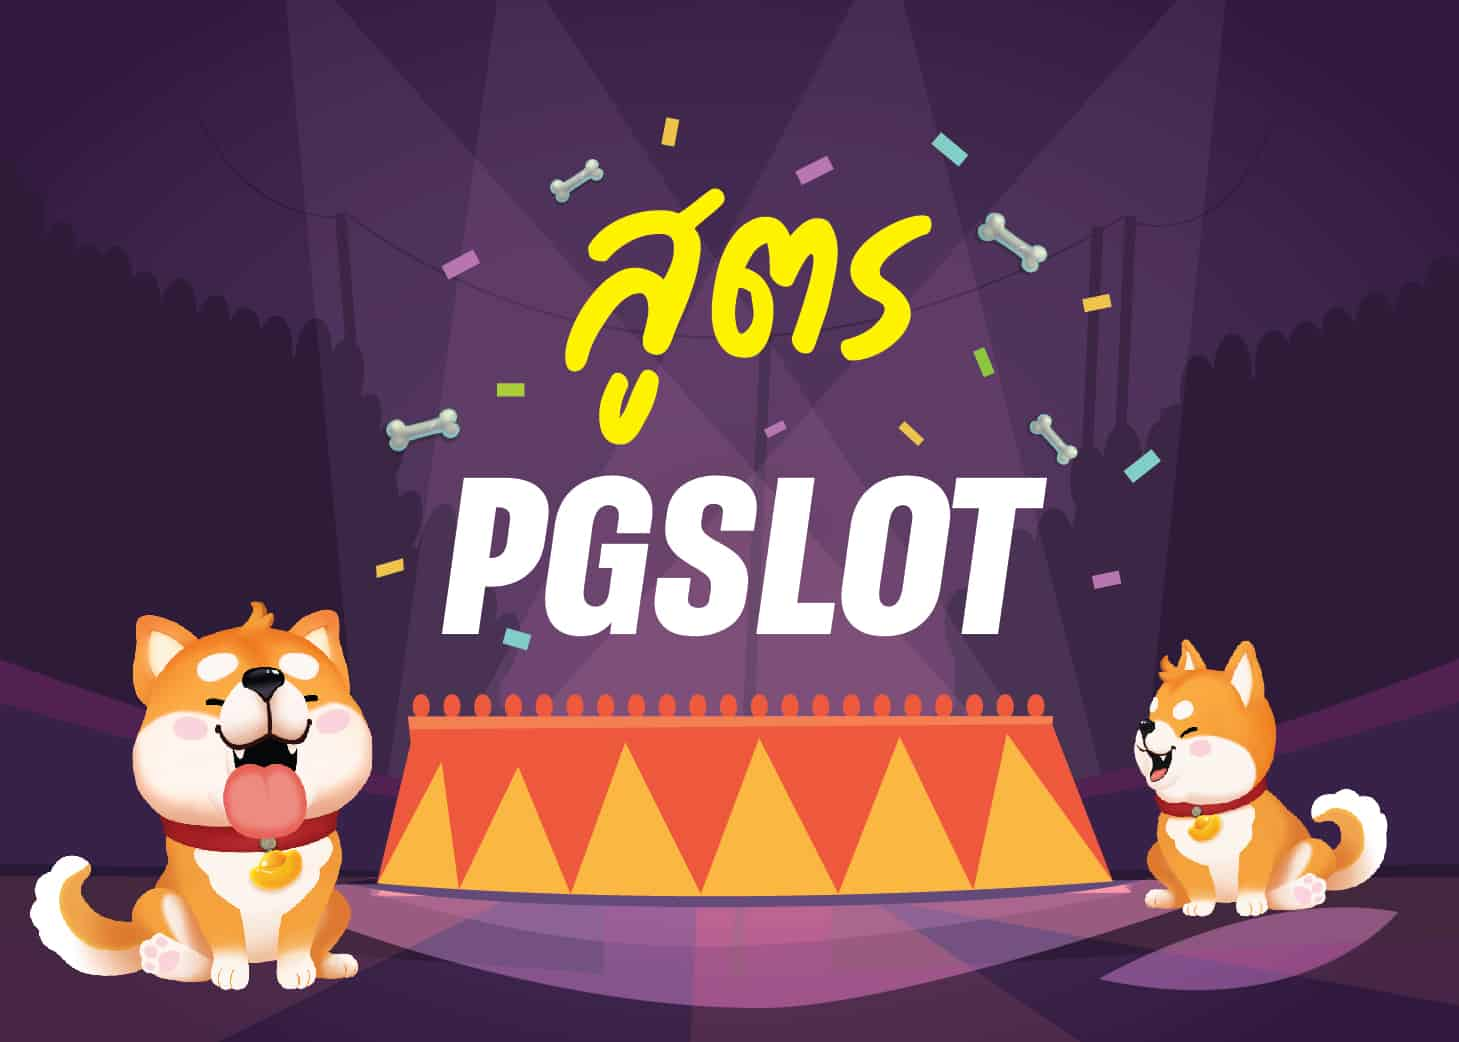 What Makes The Pg Slot Different From Other Online Gambling Websites?